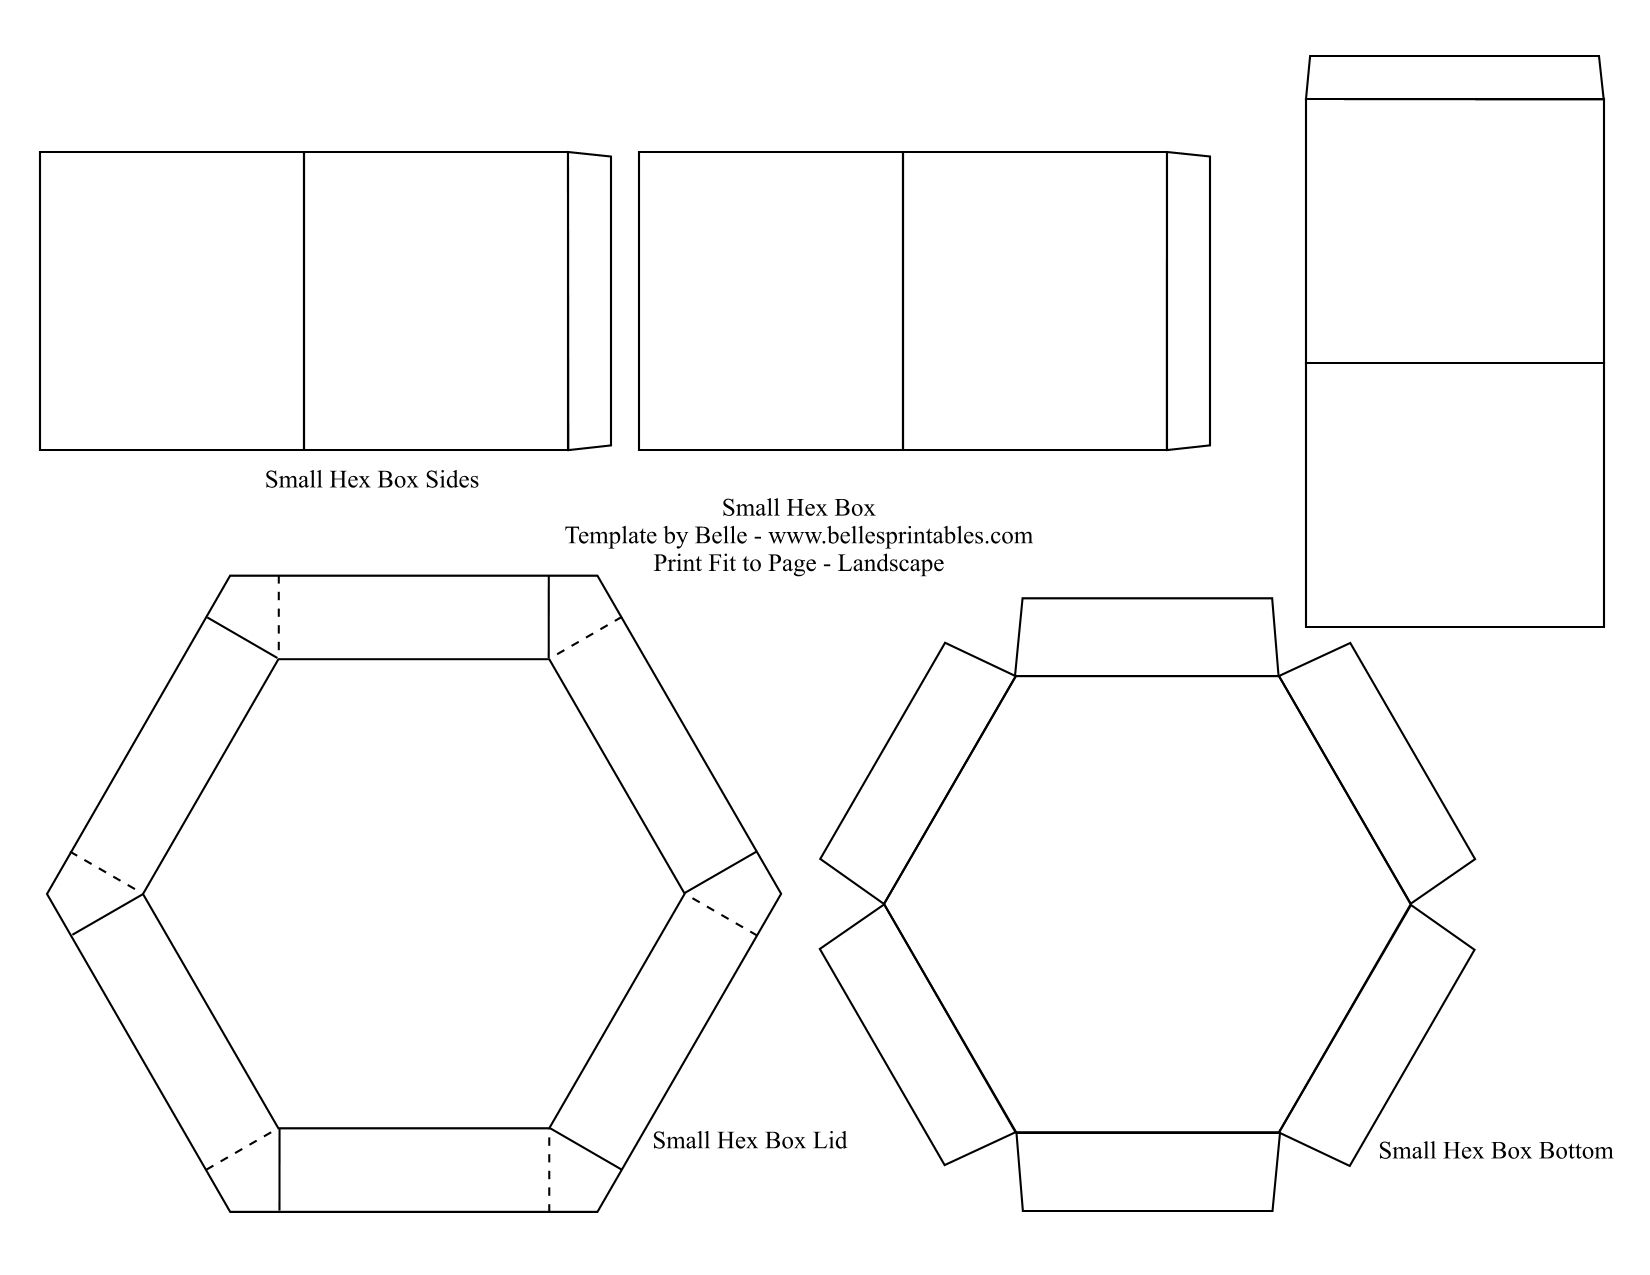 Free hexagon box template from belles printables here http free hexagon box template from belles printables here pronofoot35fo Choice Image